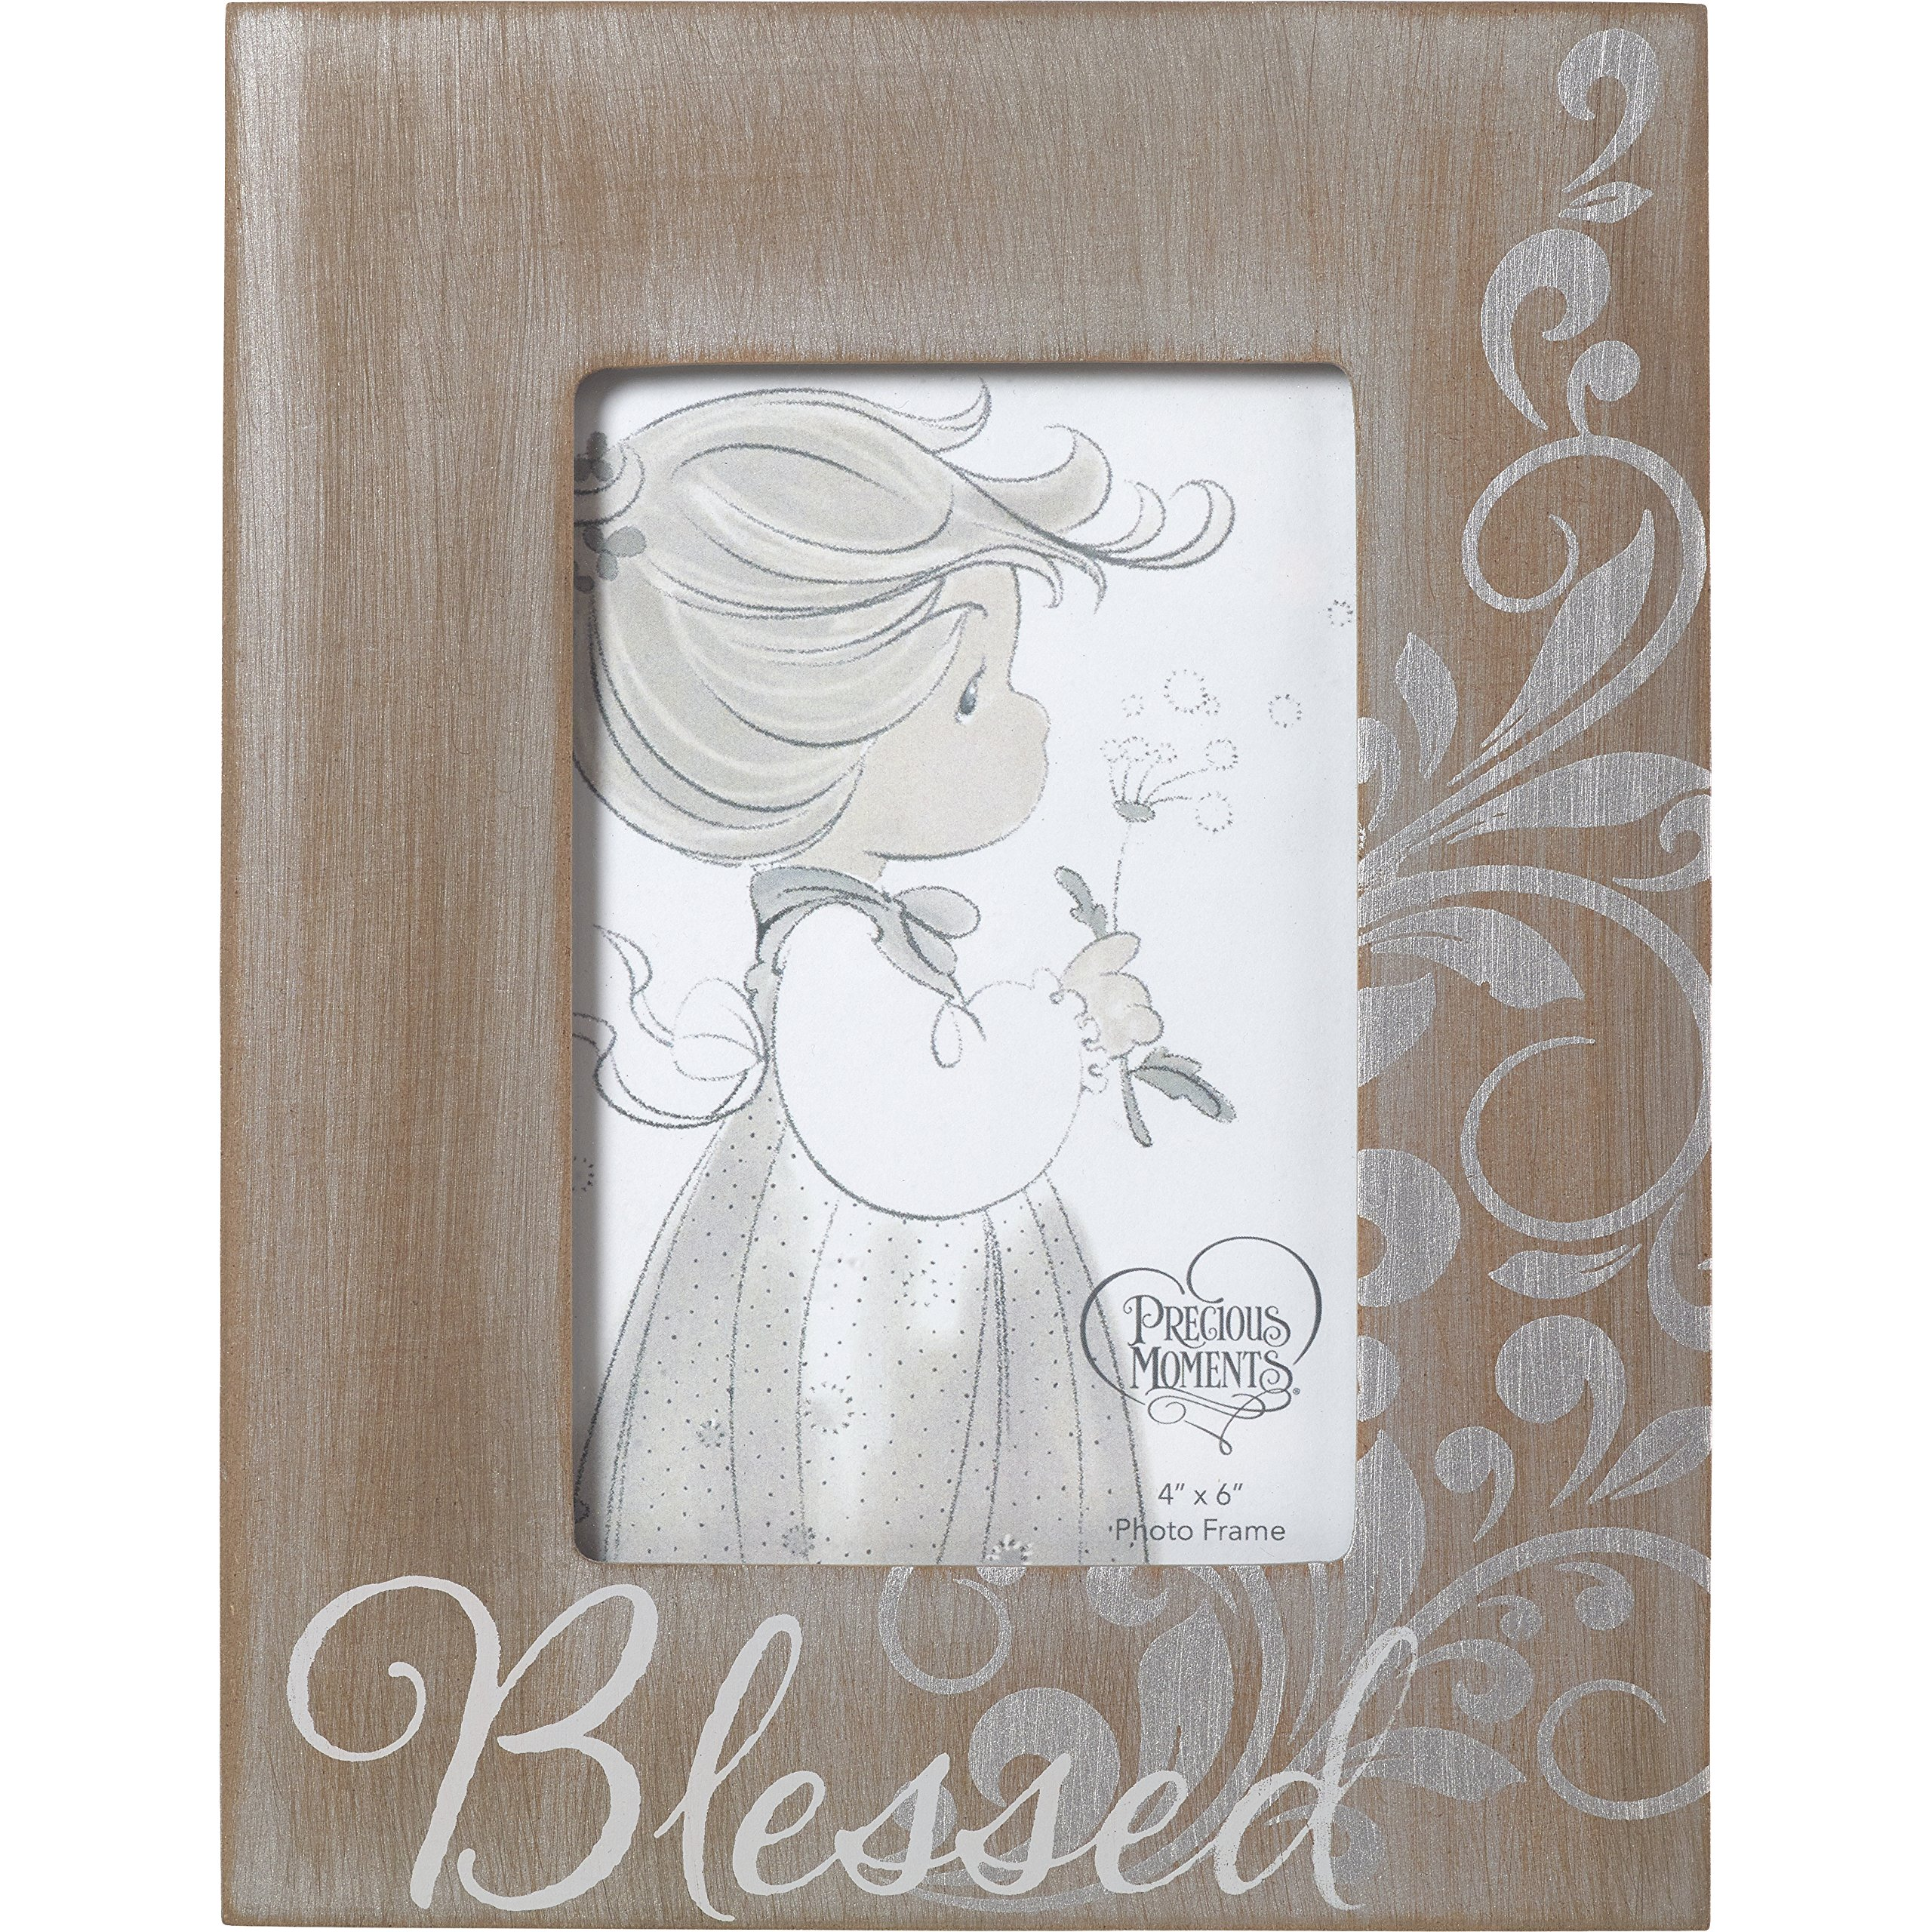 Precious Moments Blessed Rustic Farmhouse Distsressed 4x6 Wood-Like Photo Frame Home Décor 173406